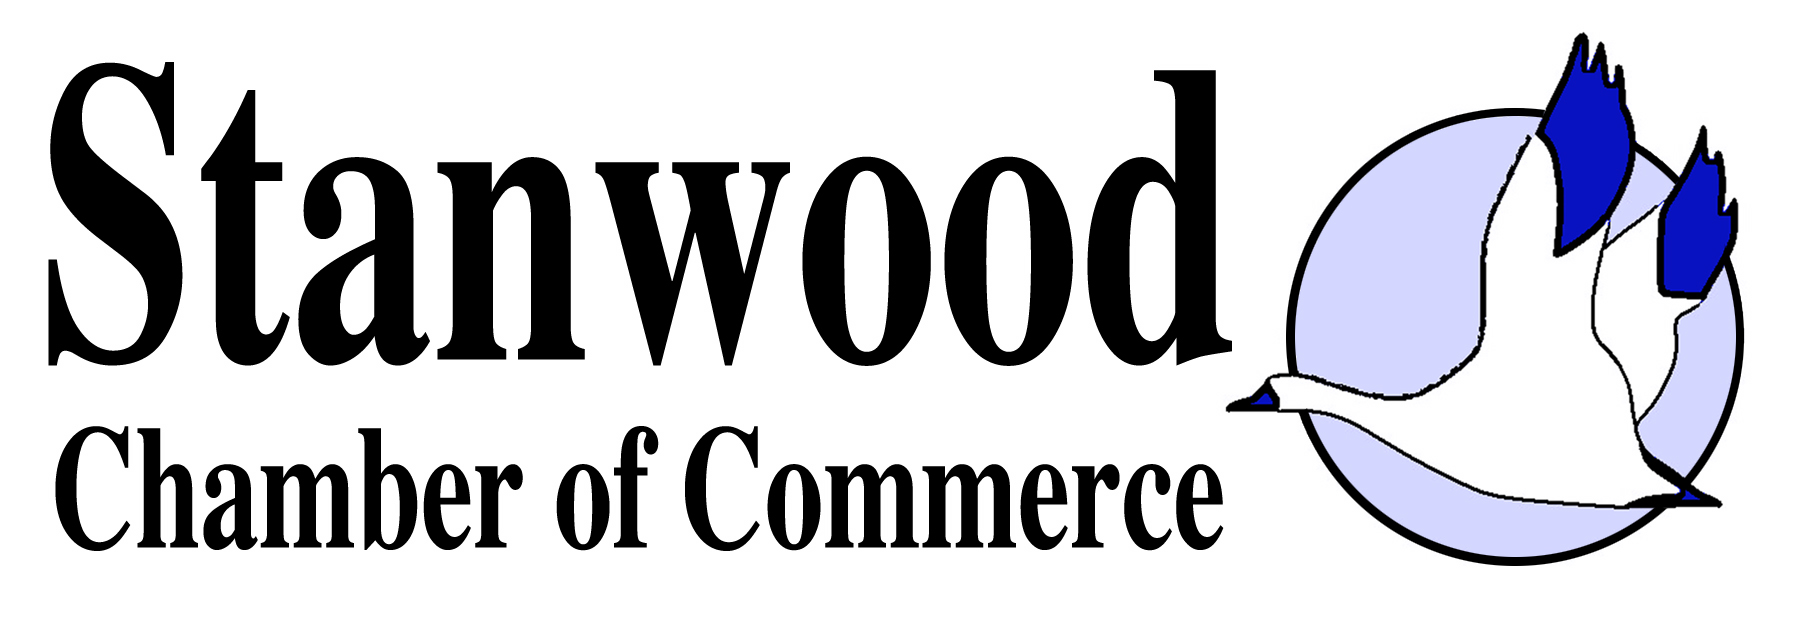 RL Services, LLC member Stanwood Washington Chamber of Commerce